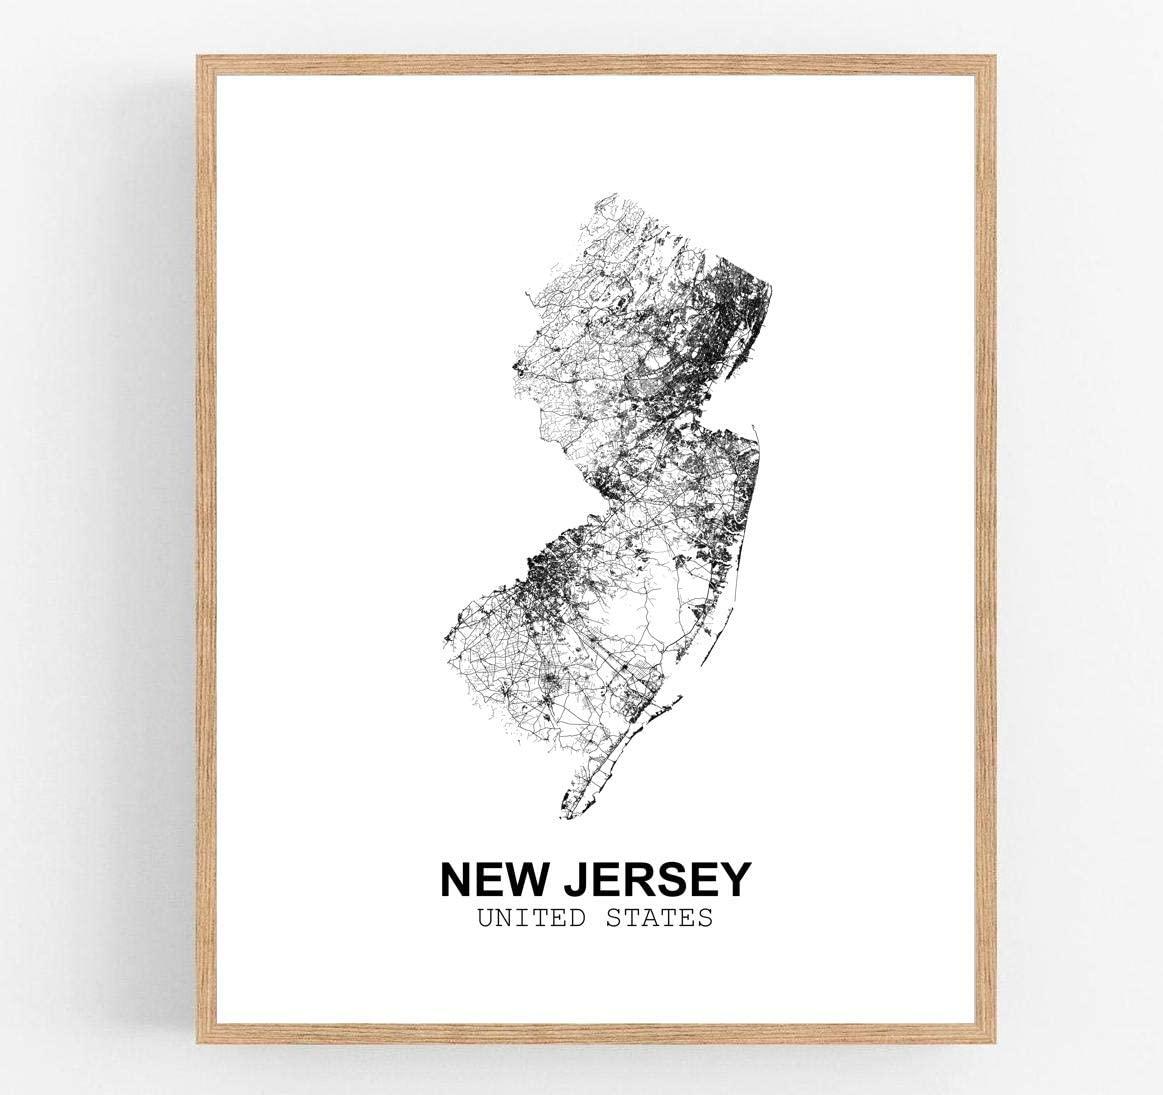 Eleville 11X14 Unframed New Jersey United States Country View Abstract Road Modern Map Art Print Poster Wall Office Home Decor Minimalist Line Art Hometown Housewarming wgn186